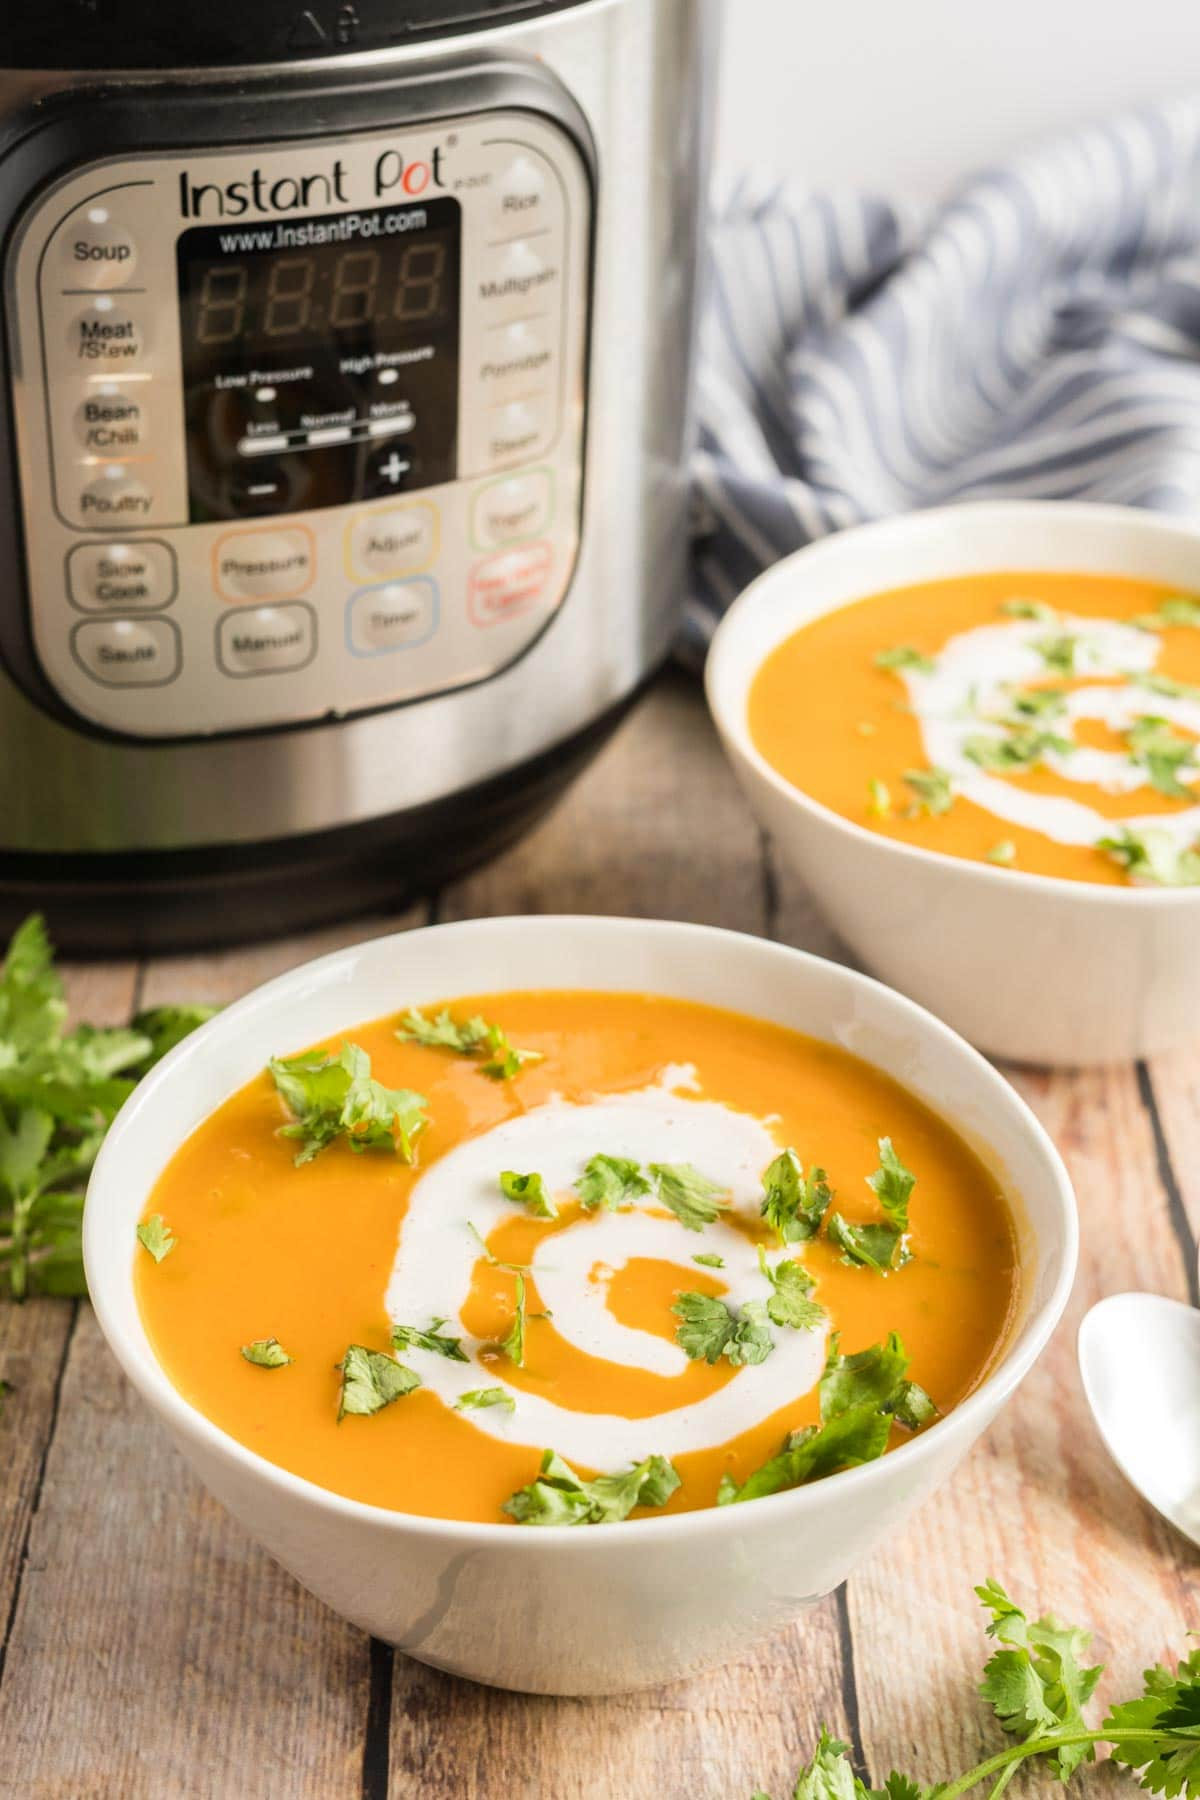 butternut squash soup in white bowls with an instant pot